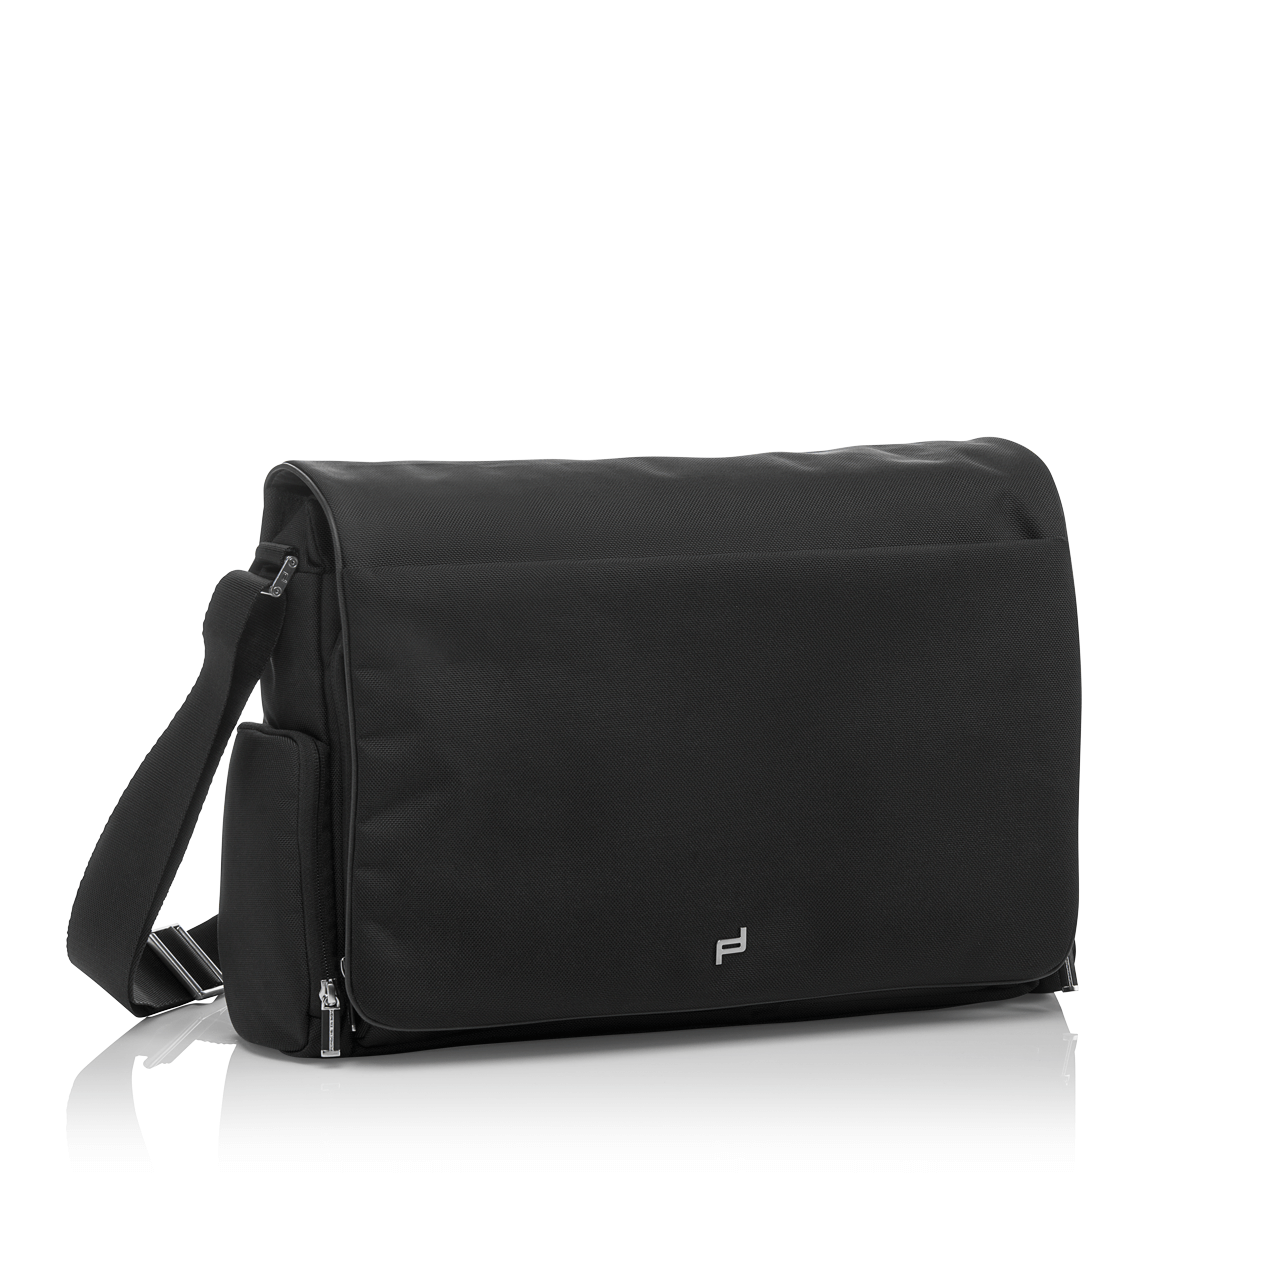 ROADSTER SOFTCASE SERIES SHOULDERBAG L FH - фото 1